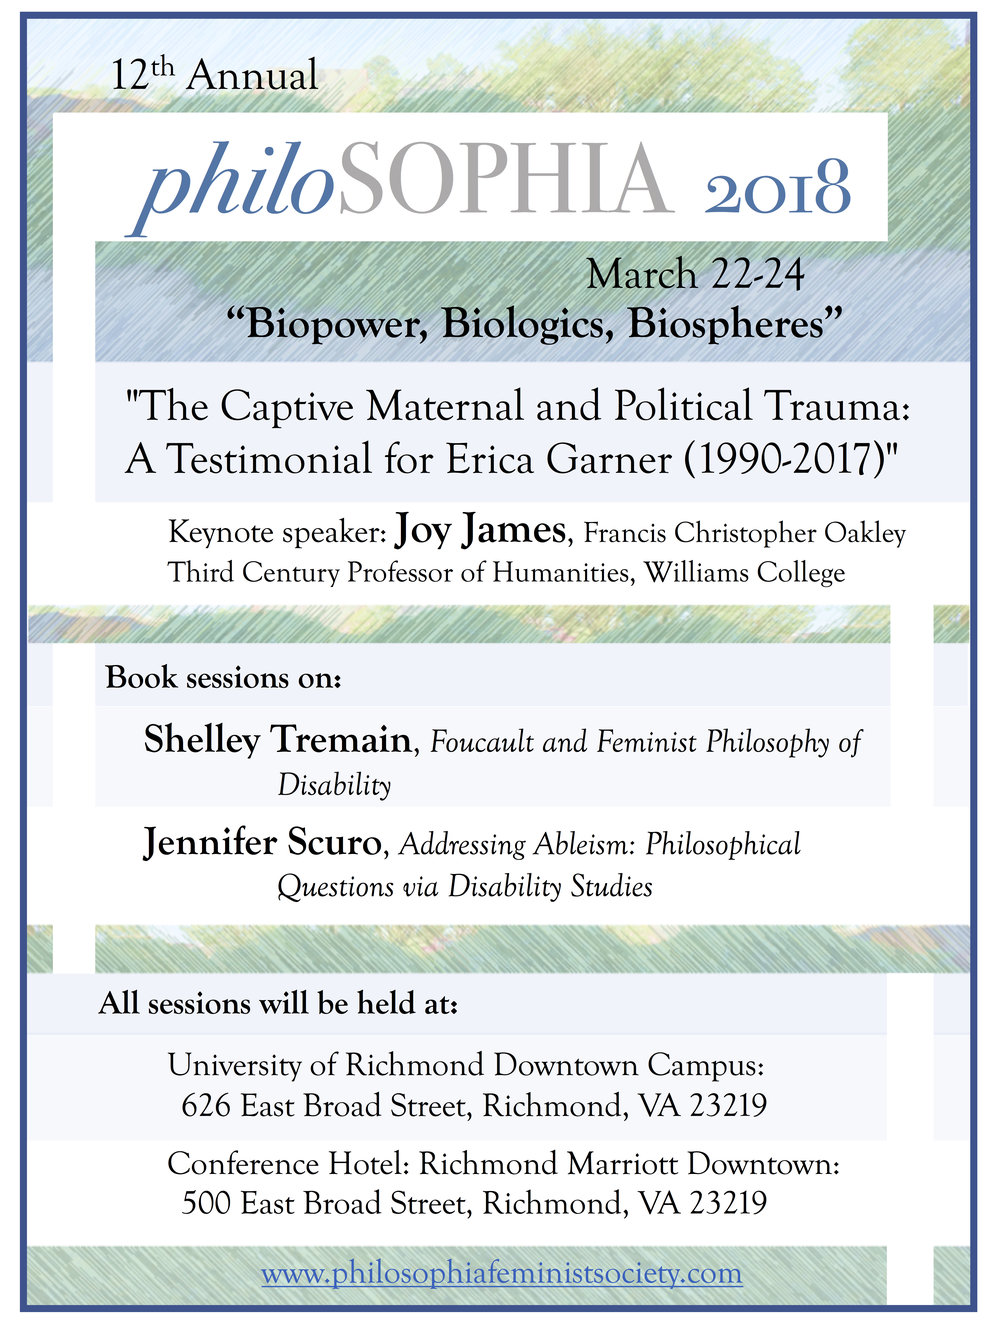 philoSOPHIA 2018 Conference flyer distributed digital.jpg